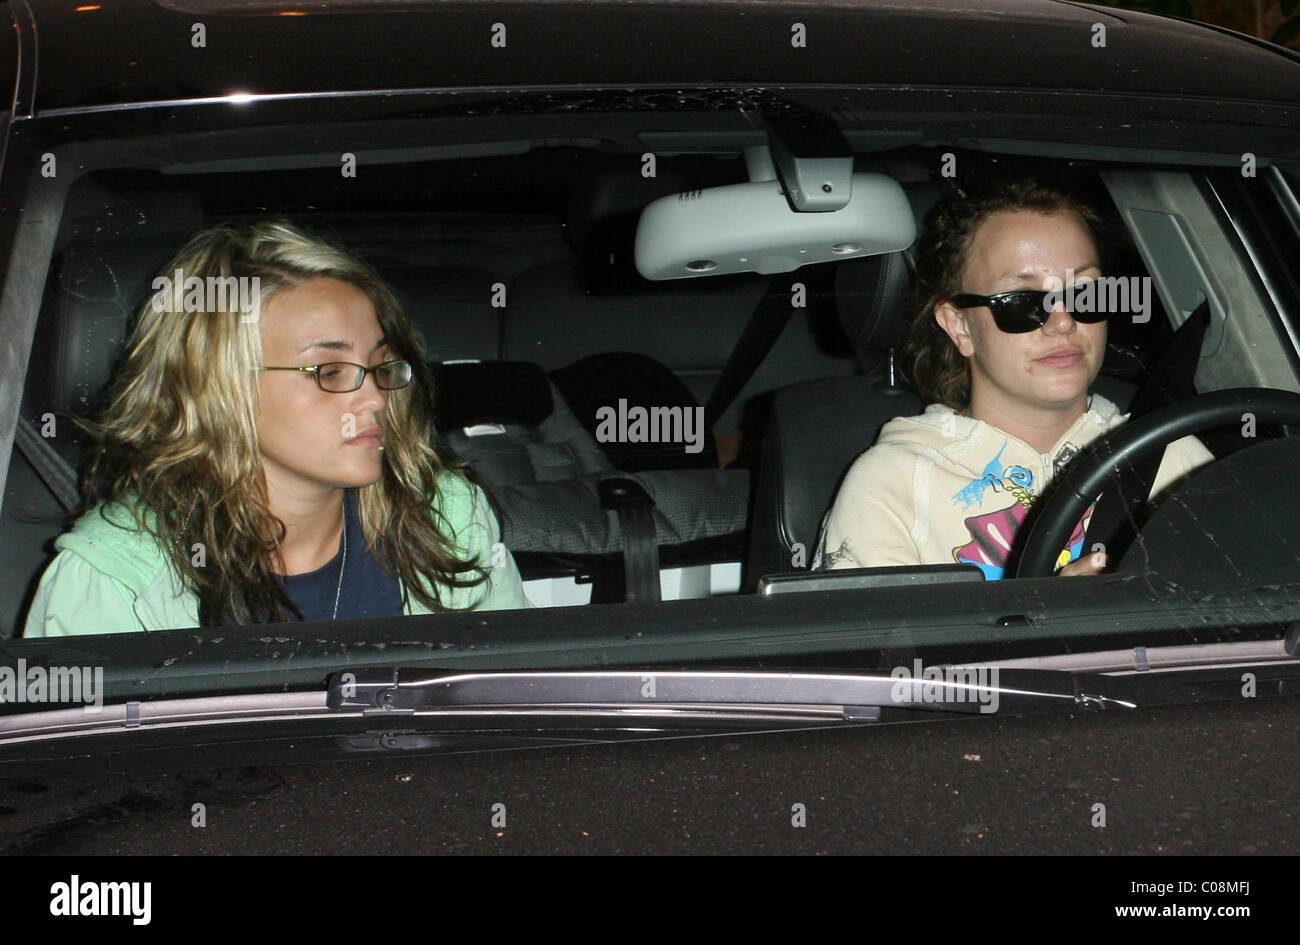 Britney Spears And Her Sister Jamie Lynn Spears Go To Taco Bell Stock Photo Alamy